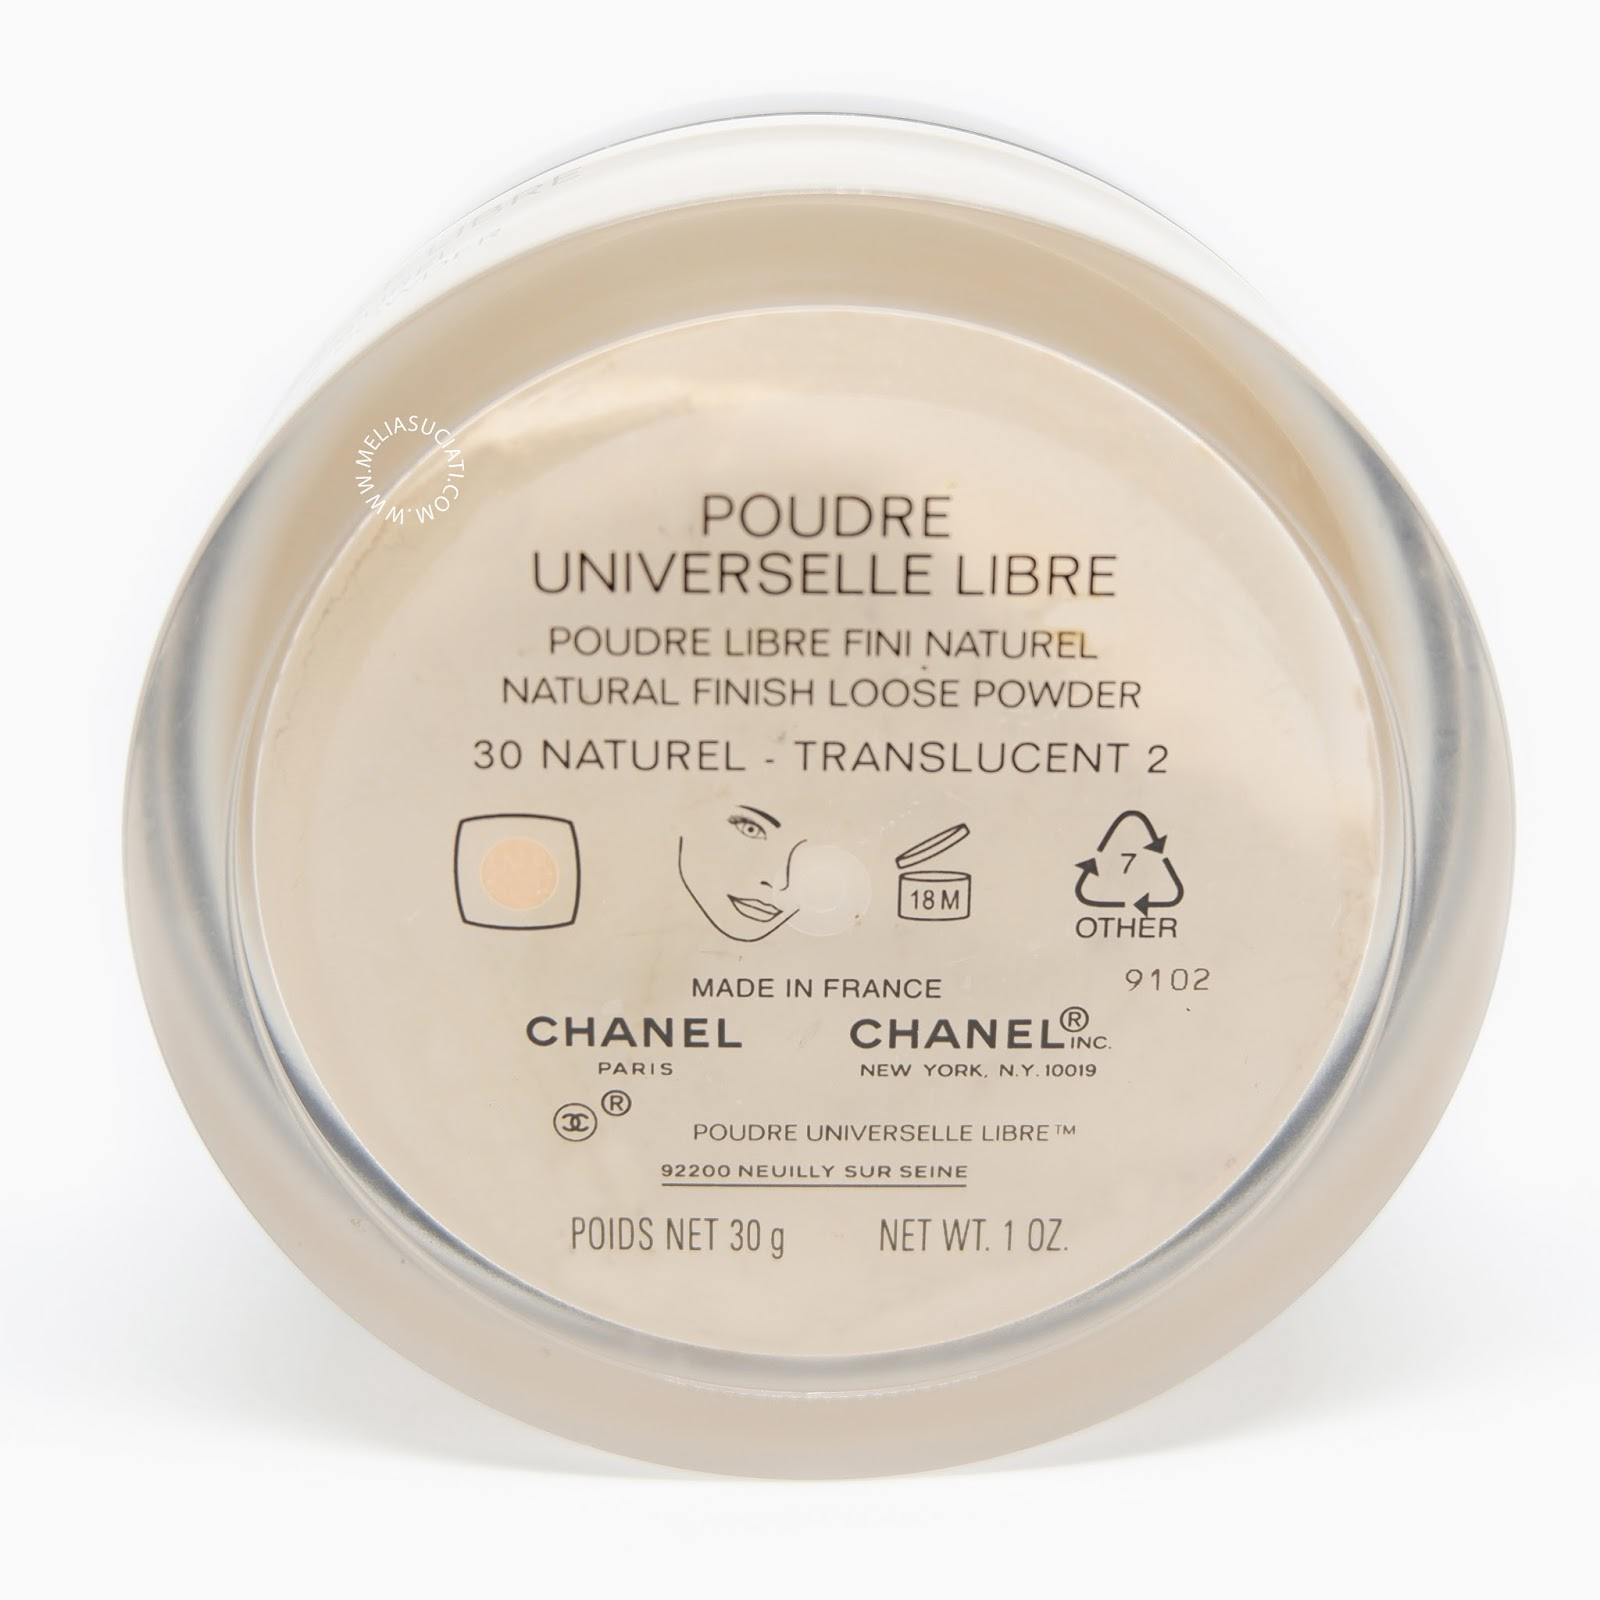 CHANEL POUDRE UNIVERSELLE LIBRE NATURAL FINISH LOOSE POWDER 30 NATUREL TRANSLUCENT 2